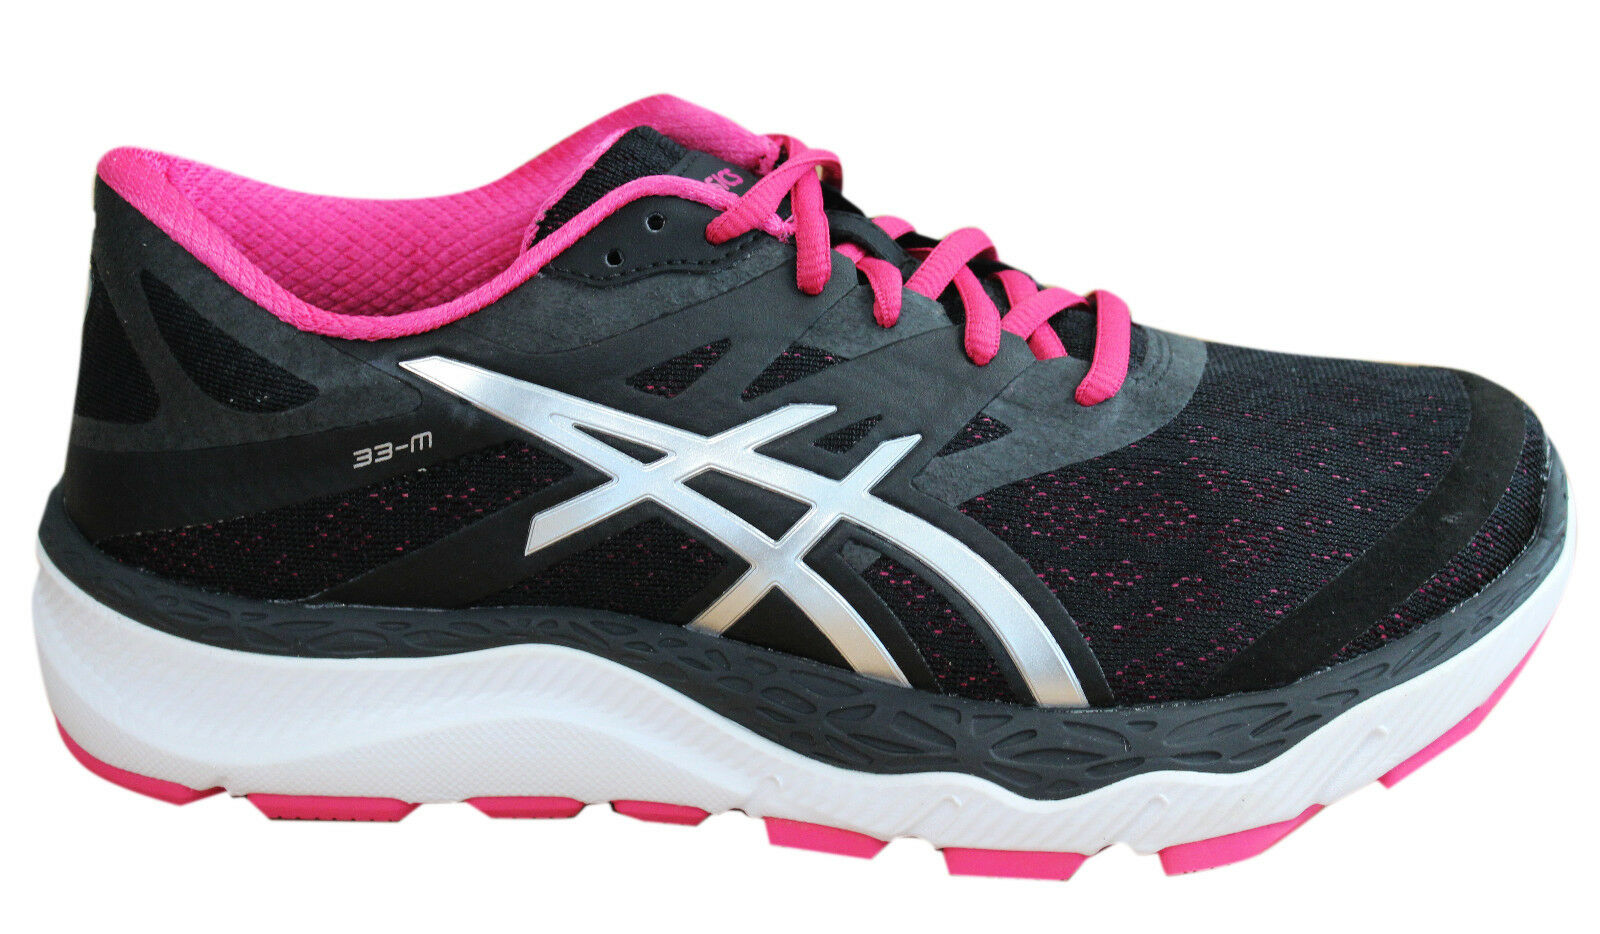 Asics 33-M Damenschuhe Trainers Lace Up Schuhes Textile Pink Silver T588N 9993 D136